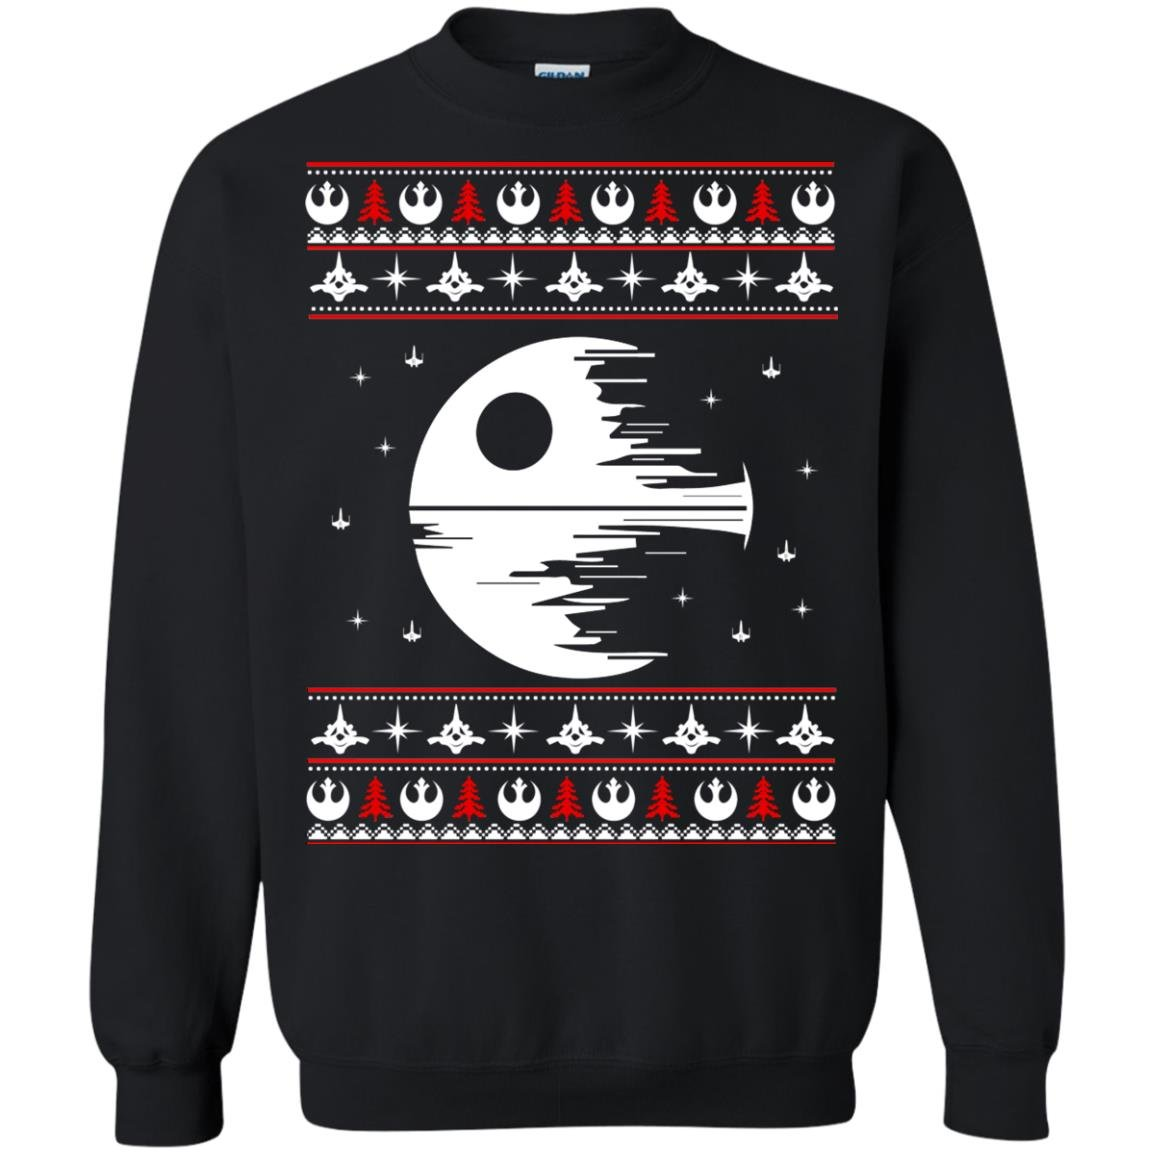 image 1776 - Star Wars Death Star Darth Vader Ugly Sweater, Shirt